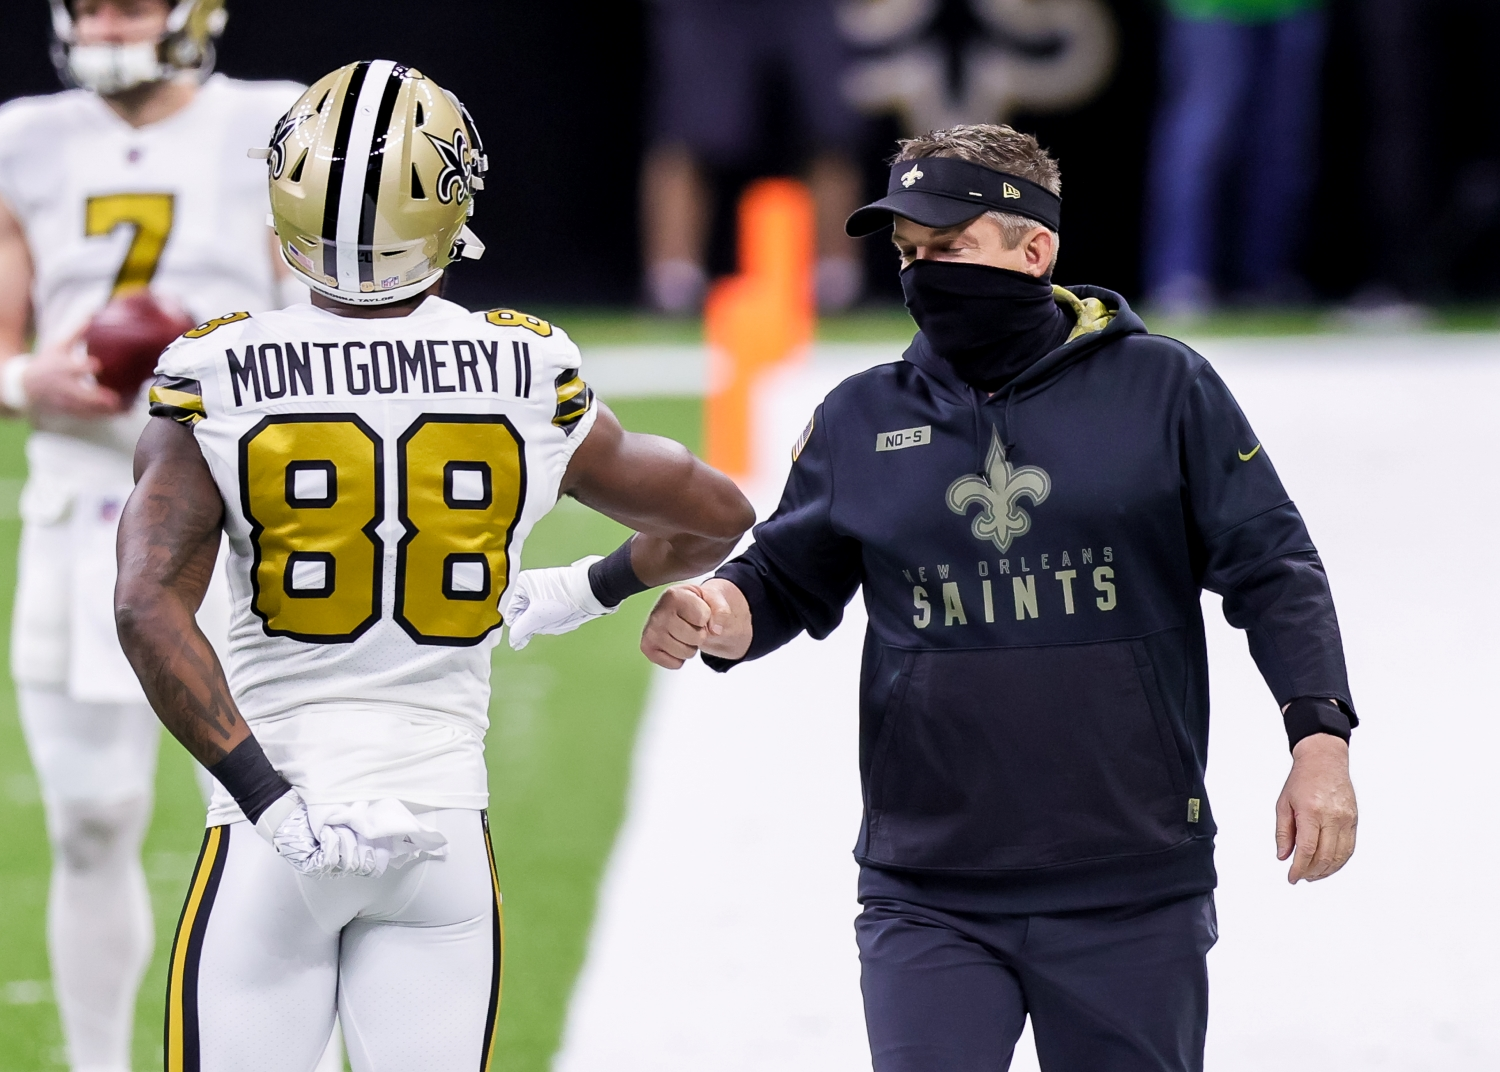 The New Orleans Saints have suffered a huge blow to their roster thanks to COVID-19.